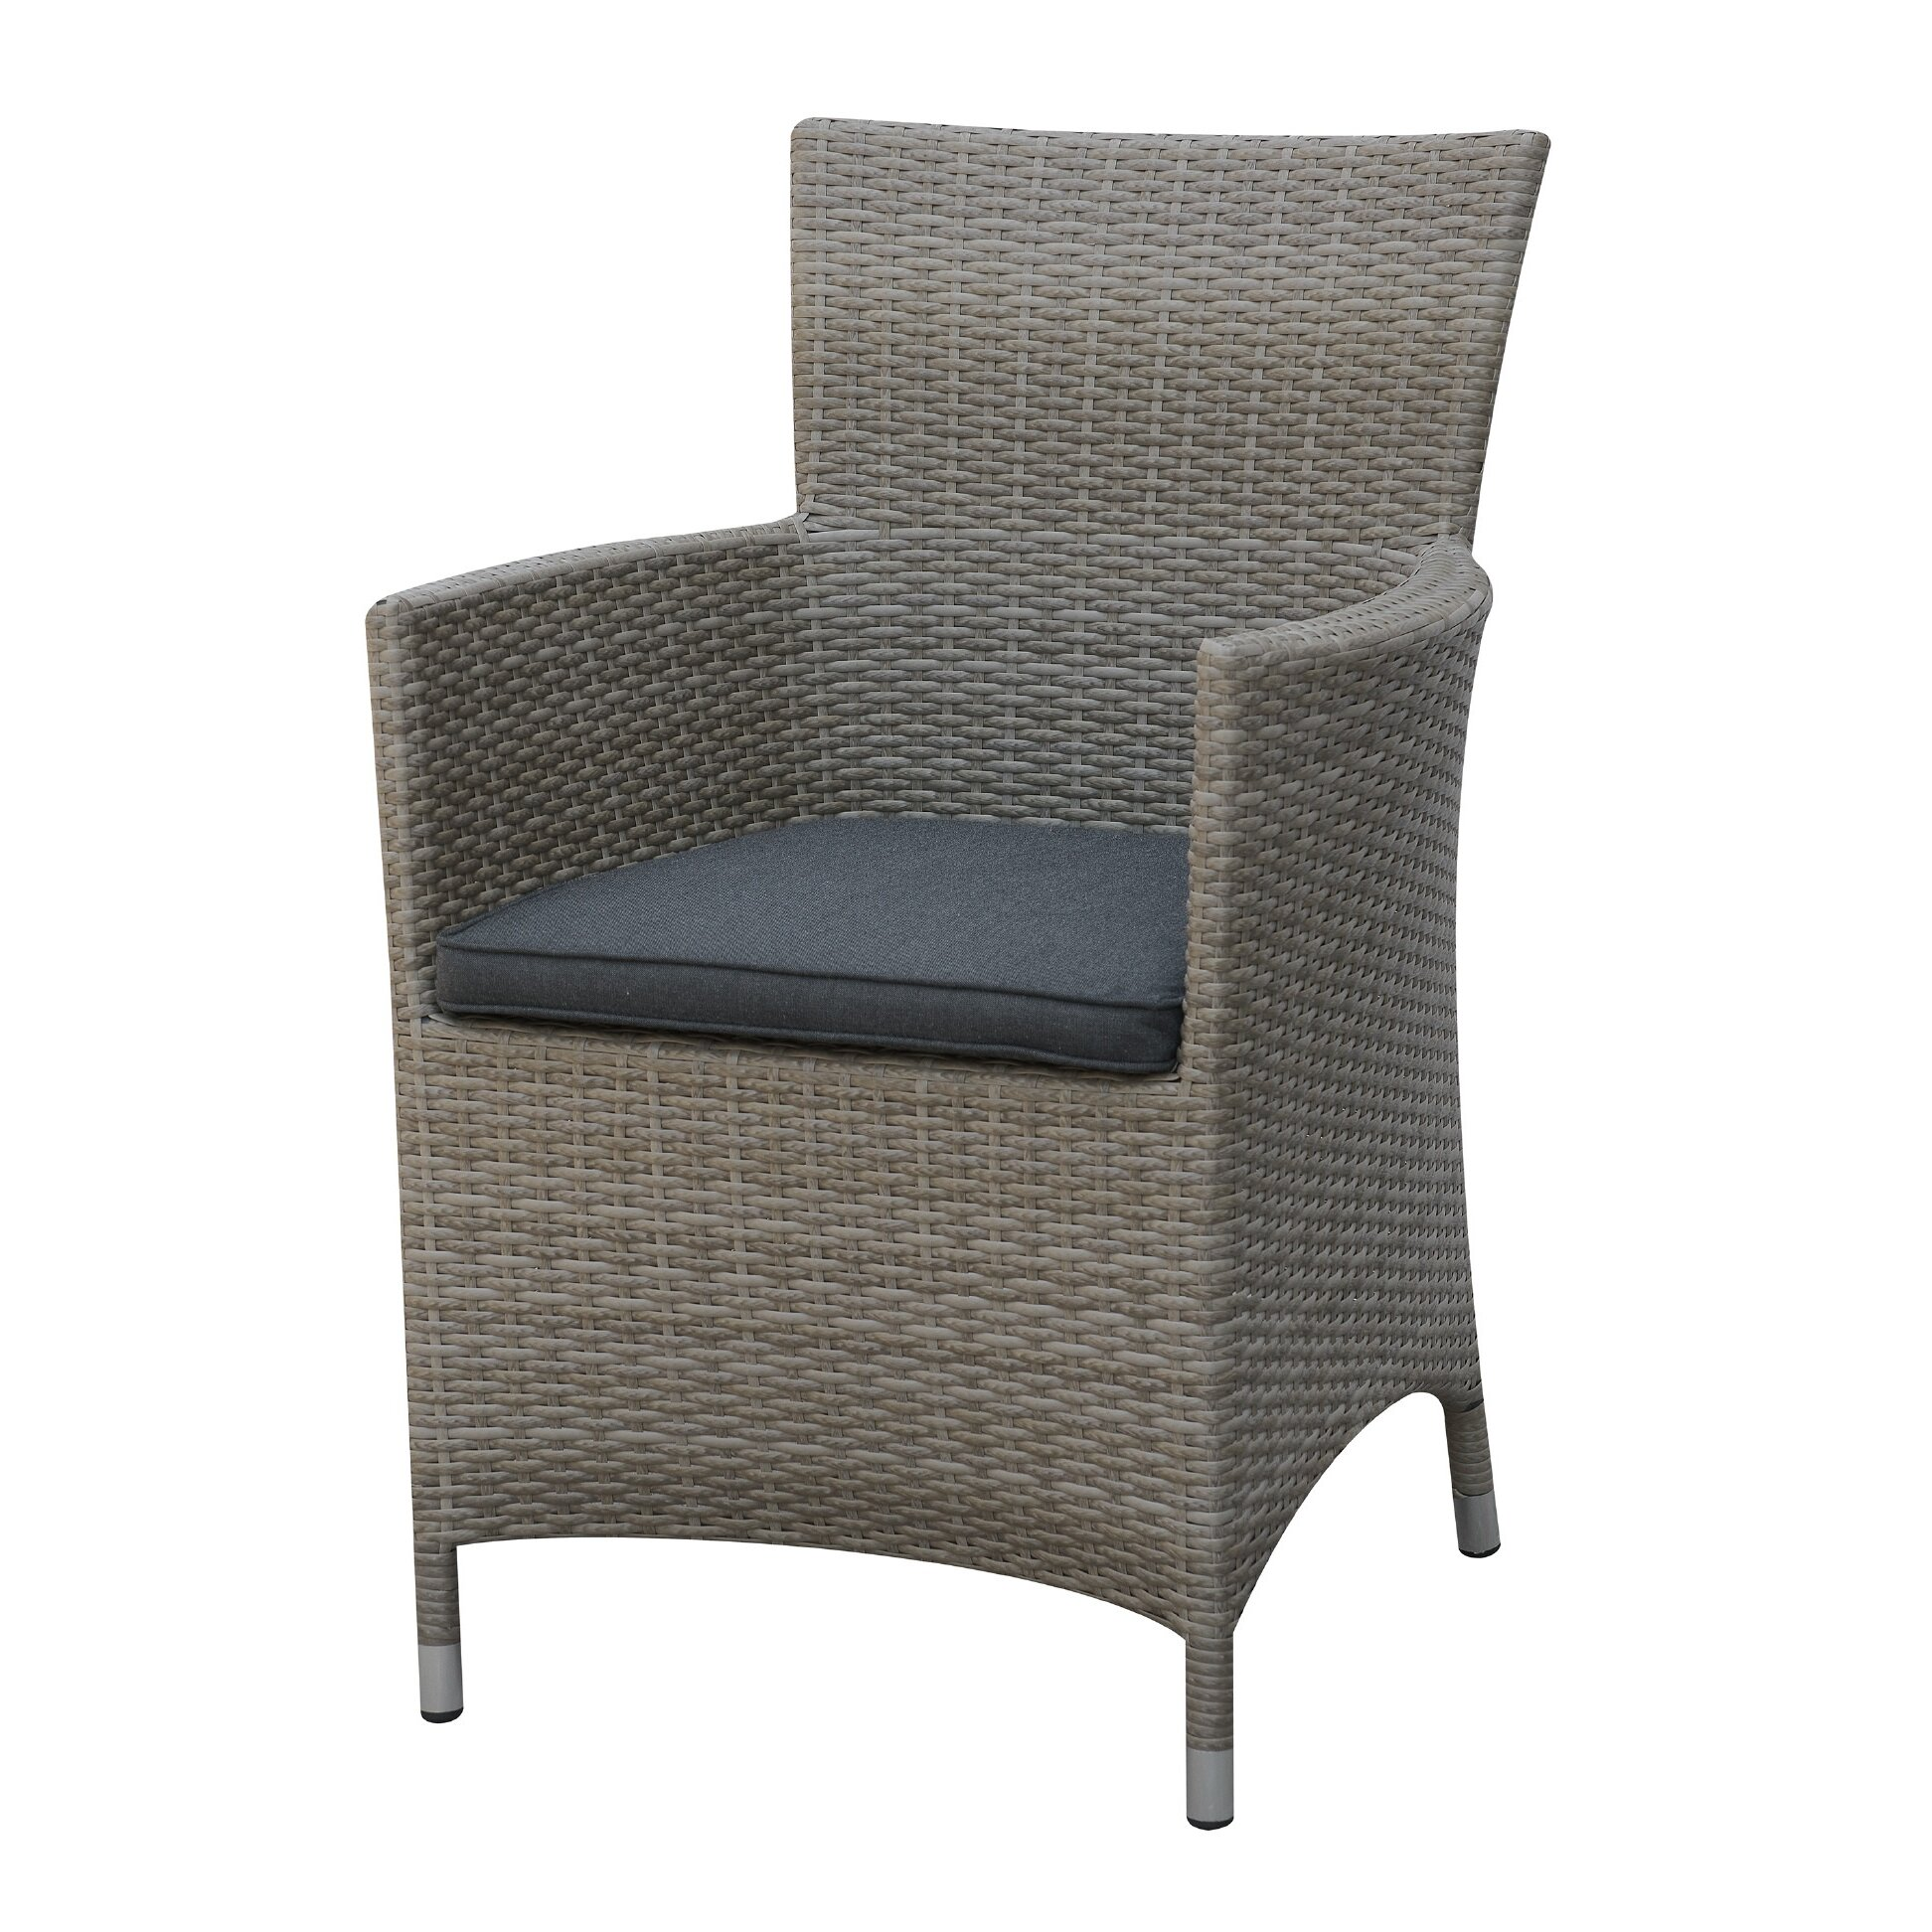 A J Homes Studio Rica Outdoor Dining Arm Chair